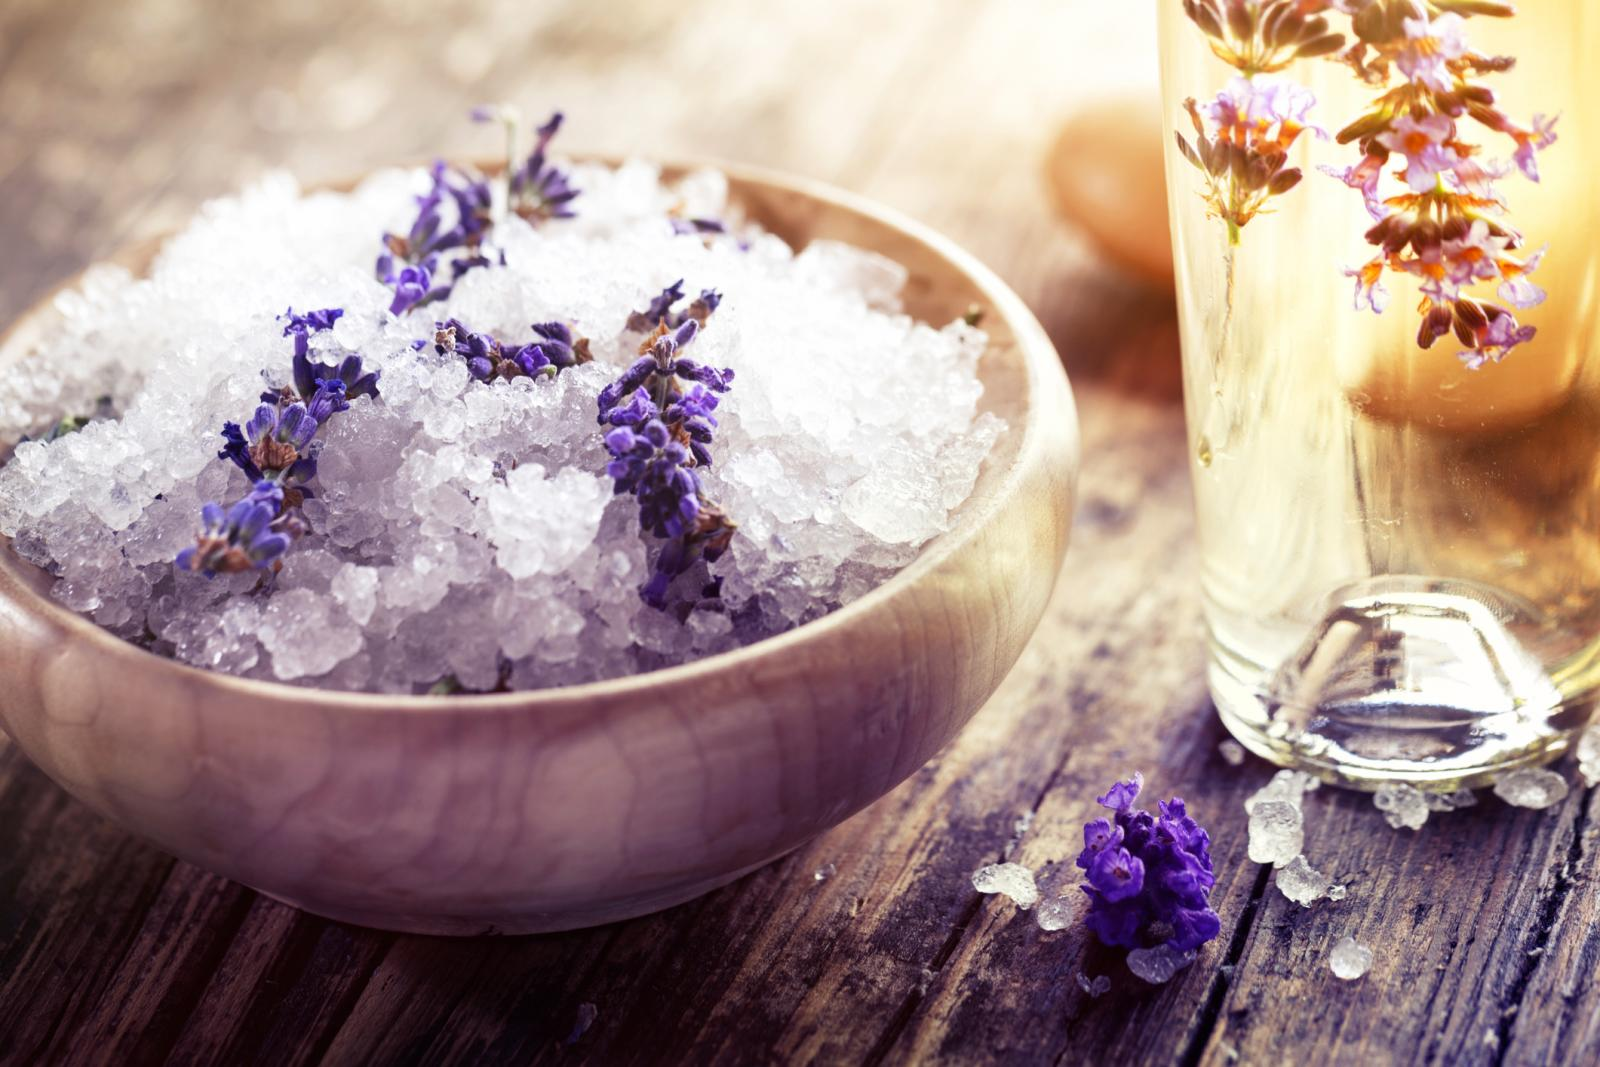 Lavender bath salt and esencial oil